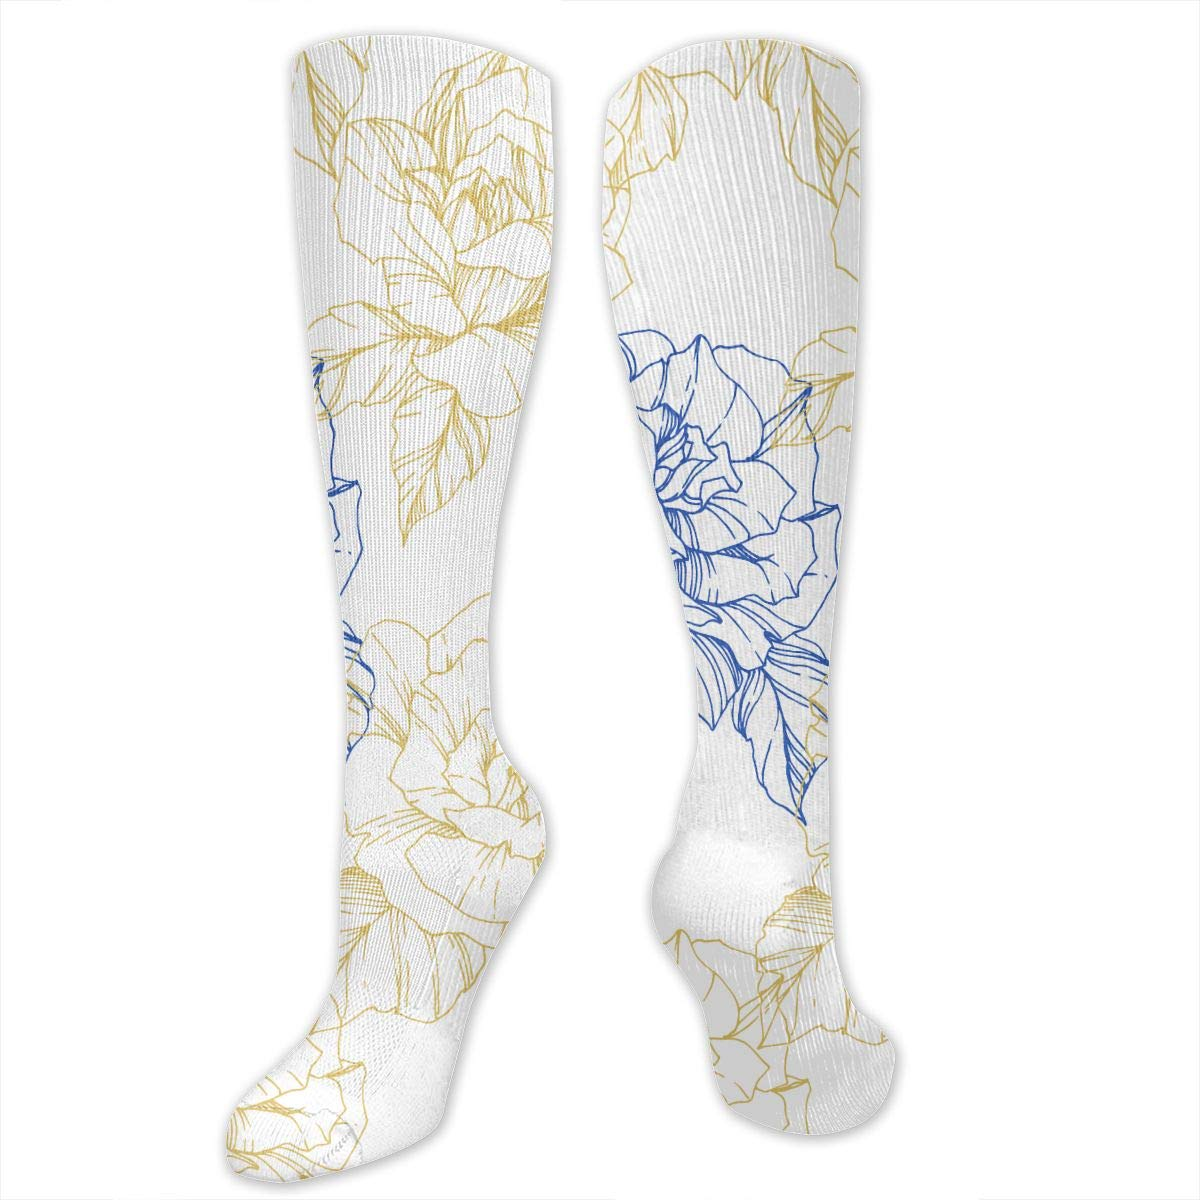 Hockey Rugby Socks White Beautiful Vector Rose2 Personal Soccer Socks For Soccer Volleyball Softball Lacrosse Baseball